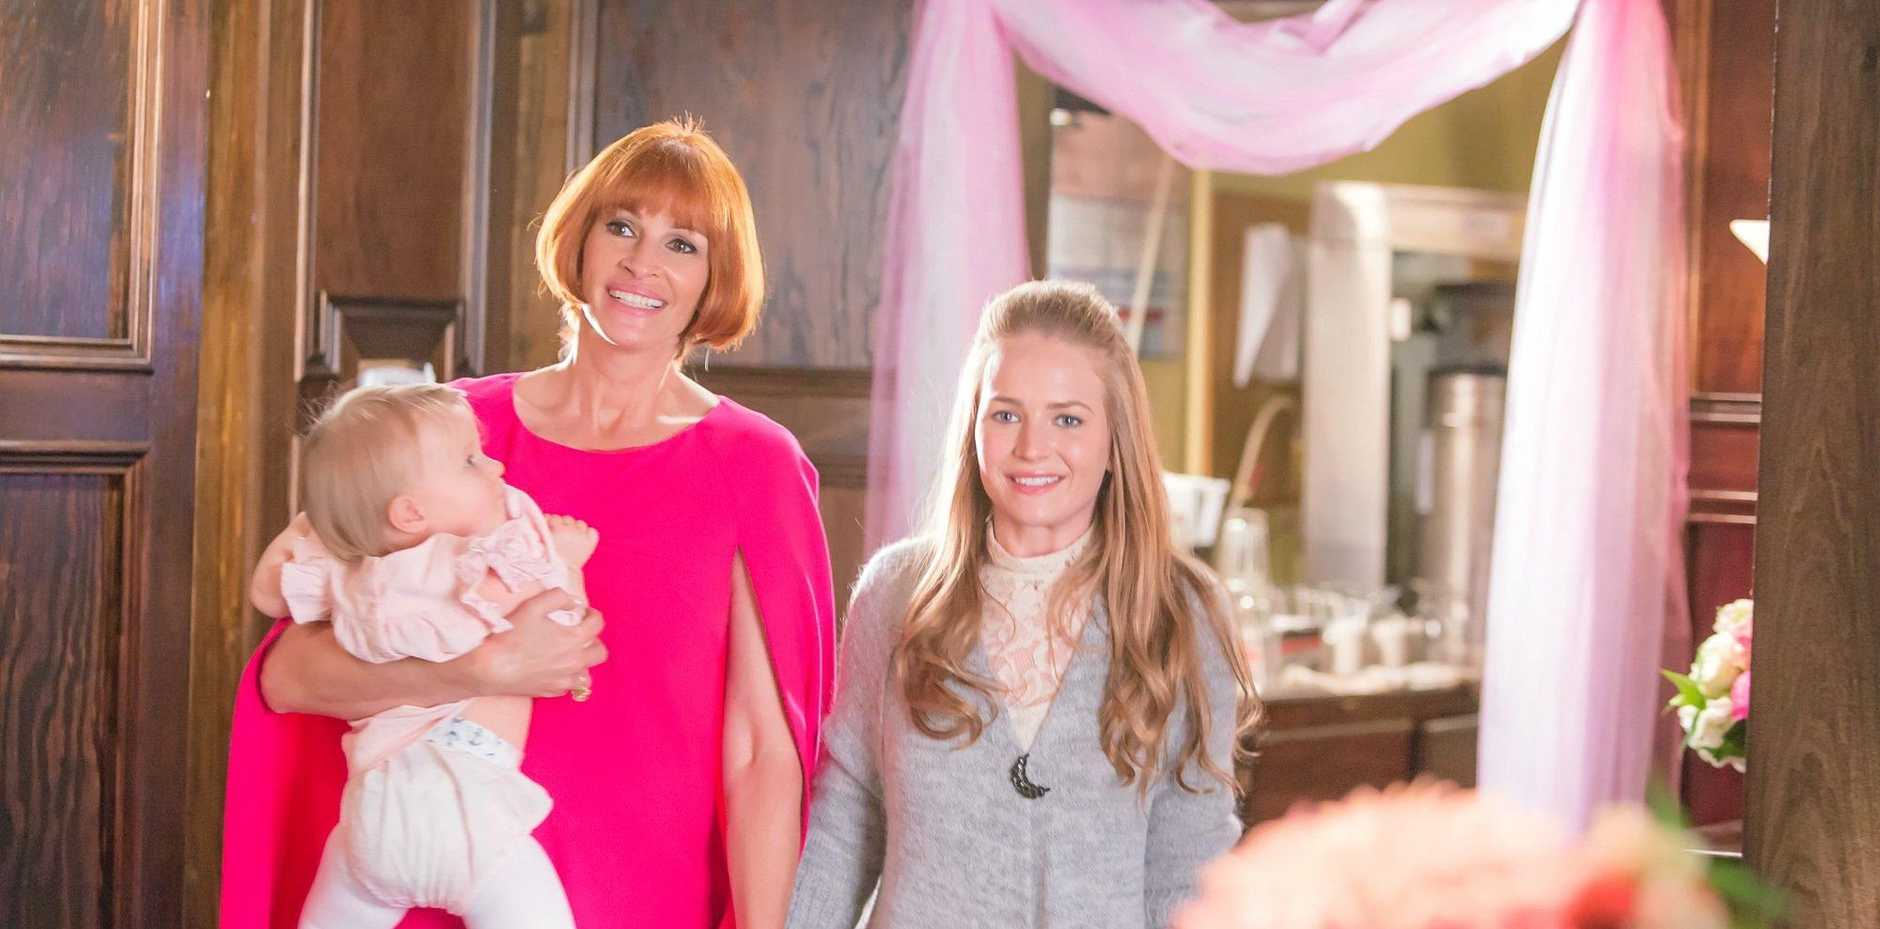 MOTHER'S DAY: Julia Roberts and Britt Robertson in a scene from the movie Mother's Day, screening in Gympie this Mother's Day.